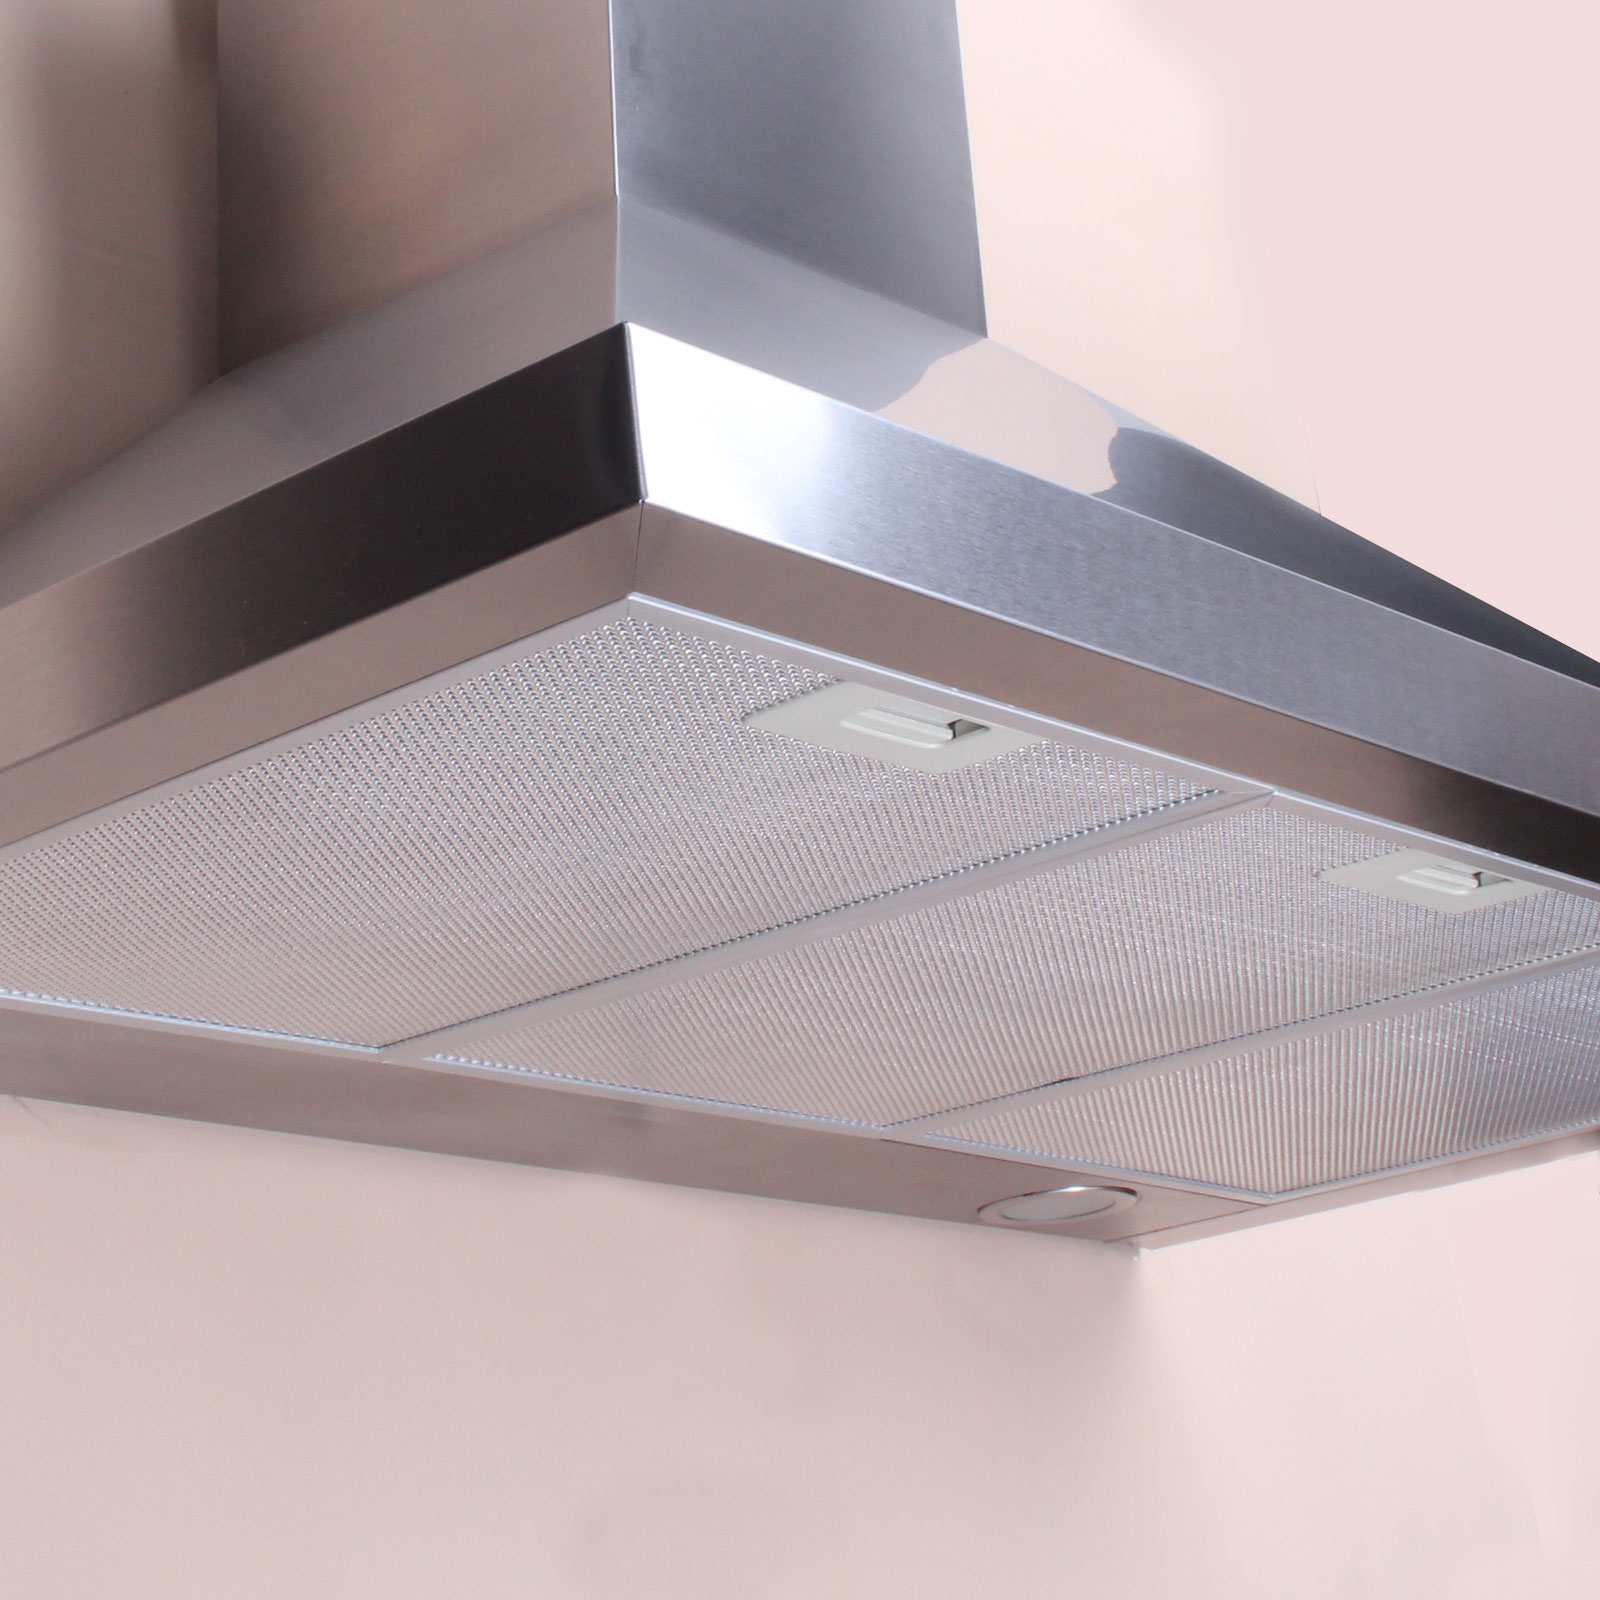 "Windmax New Euro 30"" Kitchen Wall Mount Stainless Steel Flat Range Hood Tower Style Chimney Vents at Sears.com"